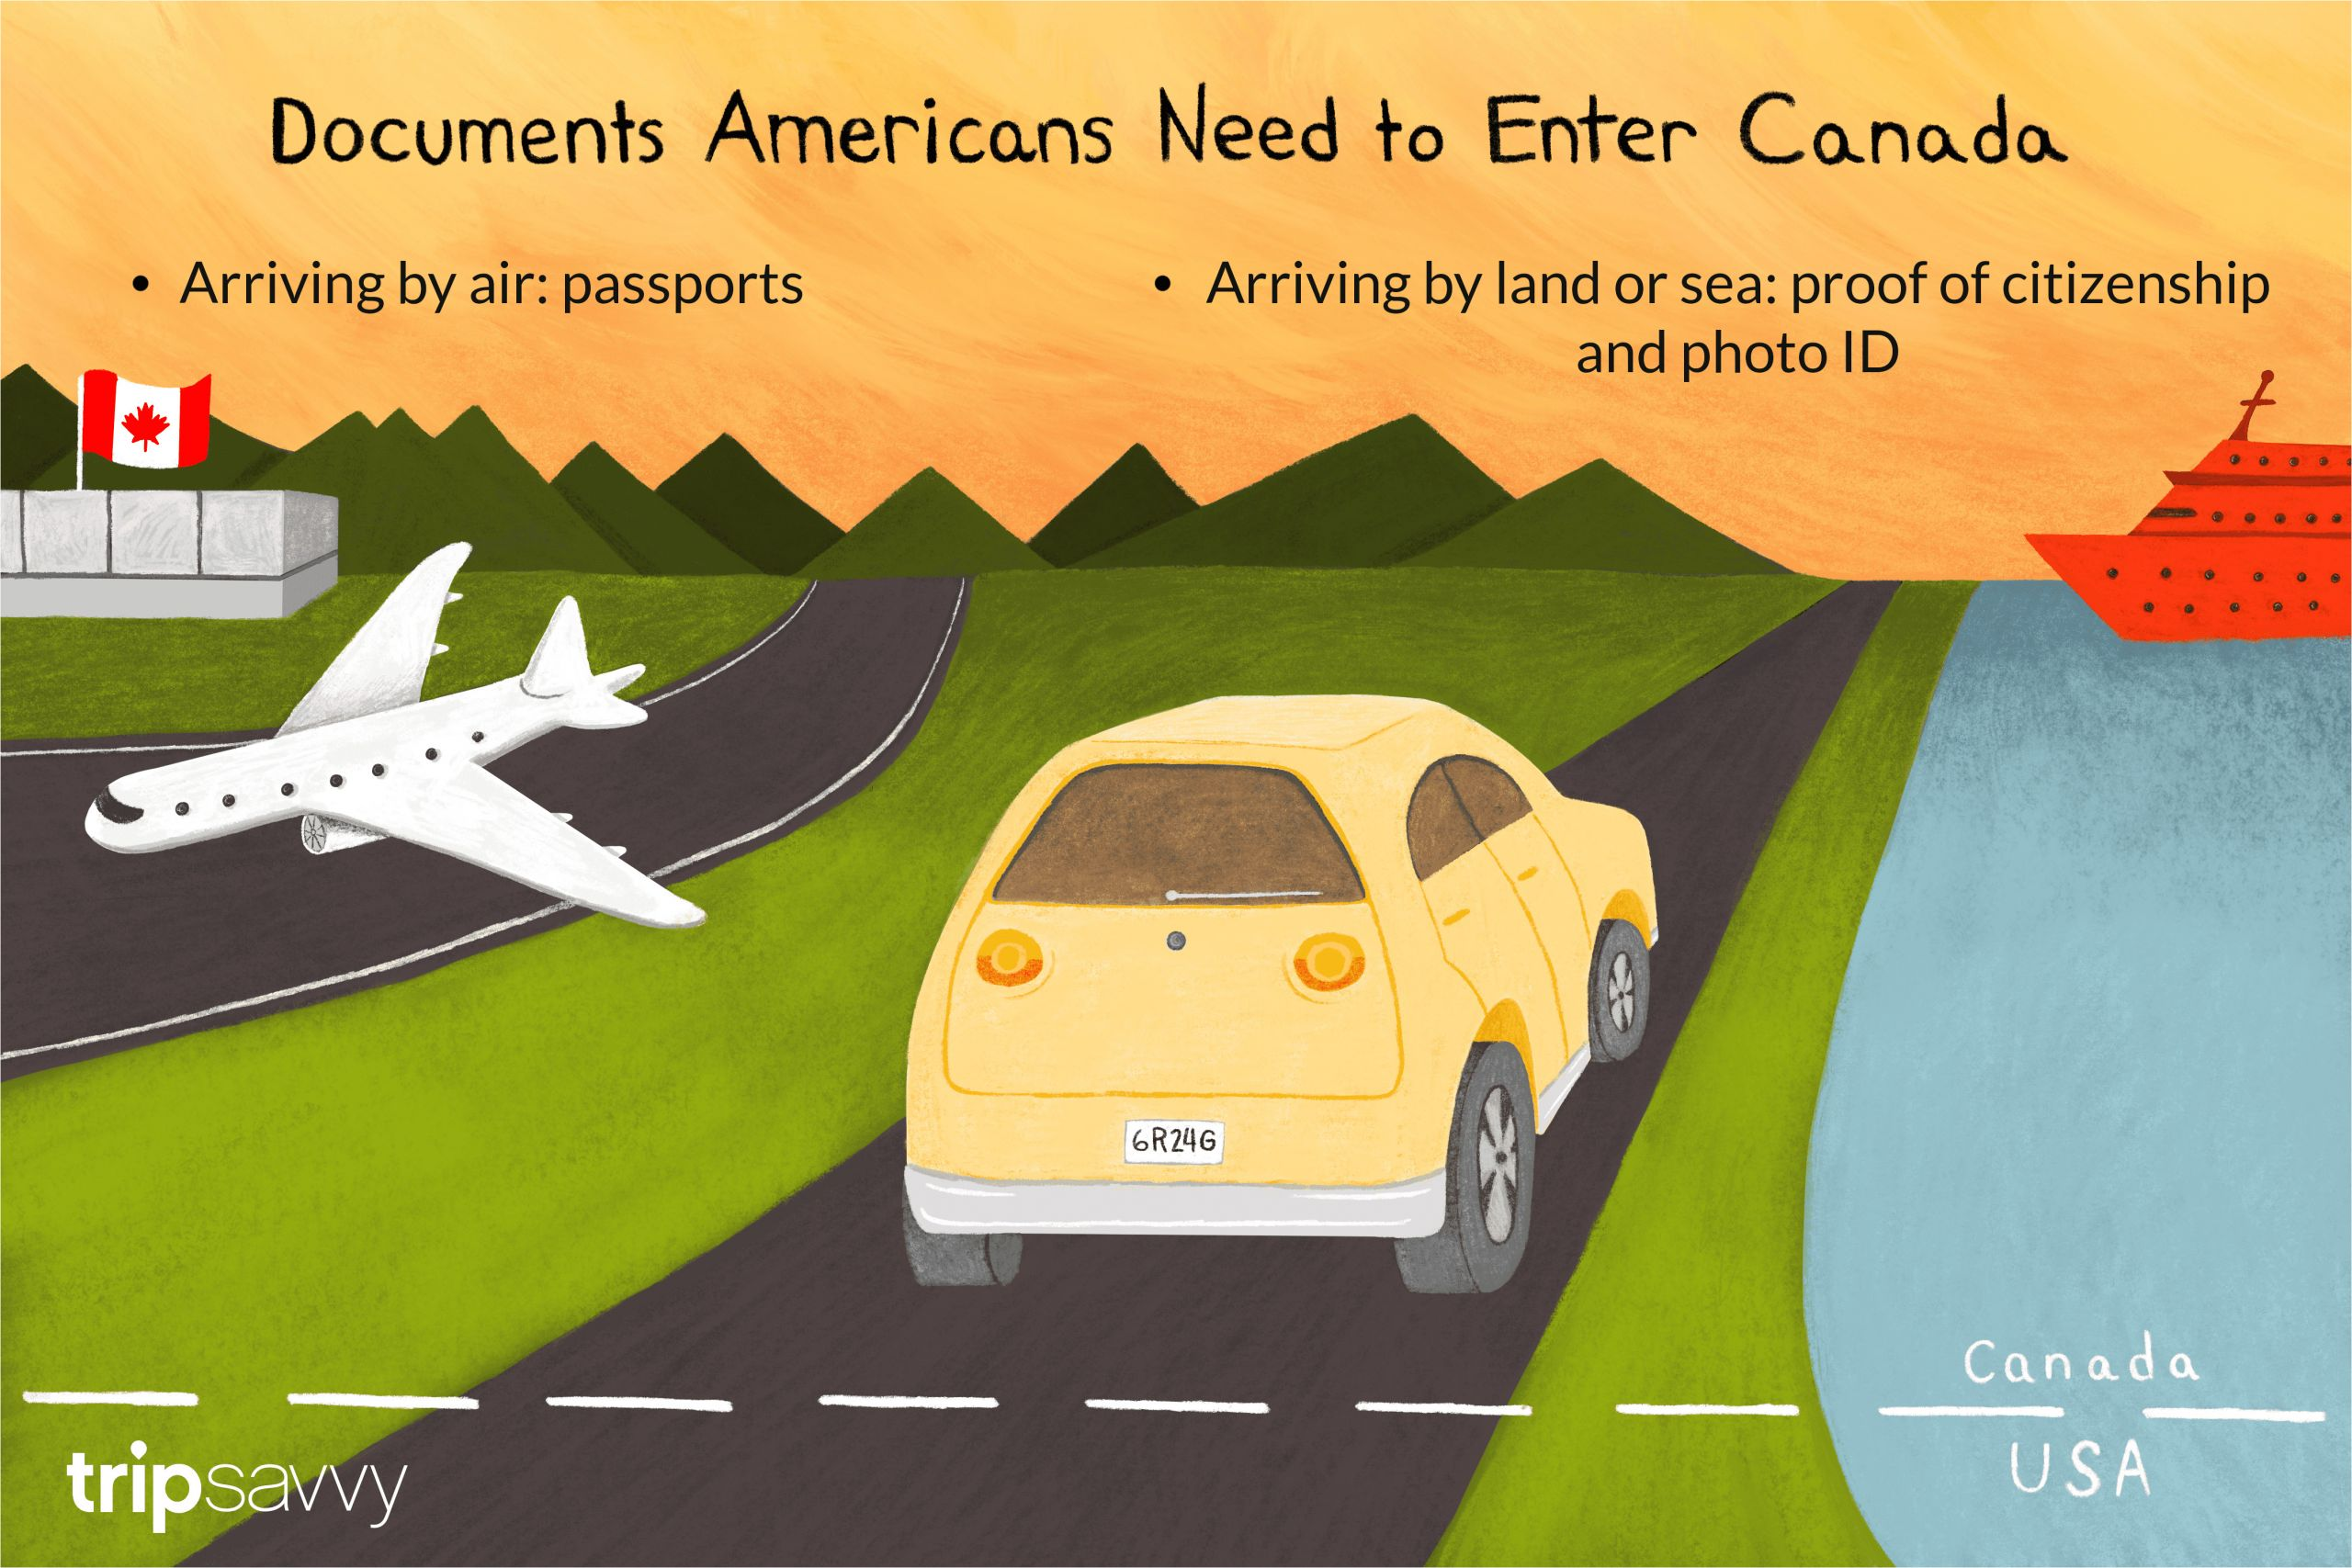 americans need passport to visit canada 1481664 v2 52647497ba3b40968363e7b043eaa06c png